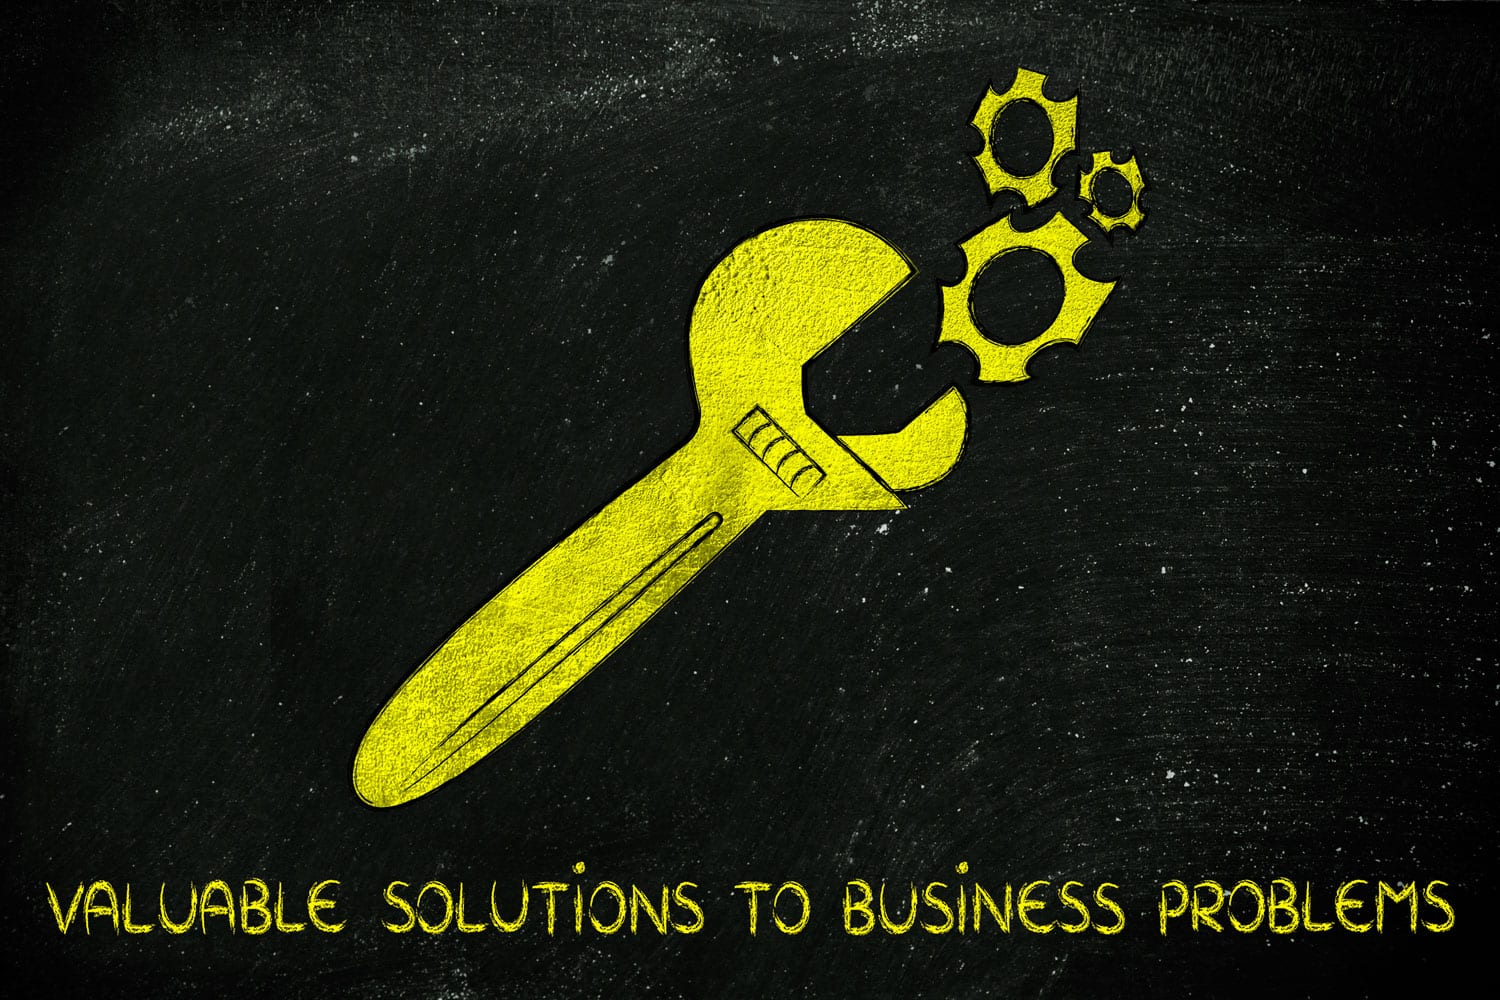 valuable solutions to business problems